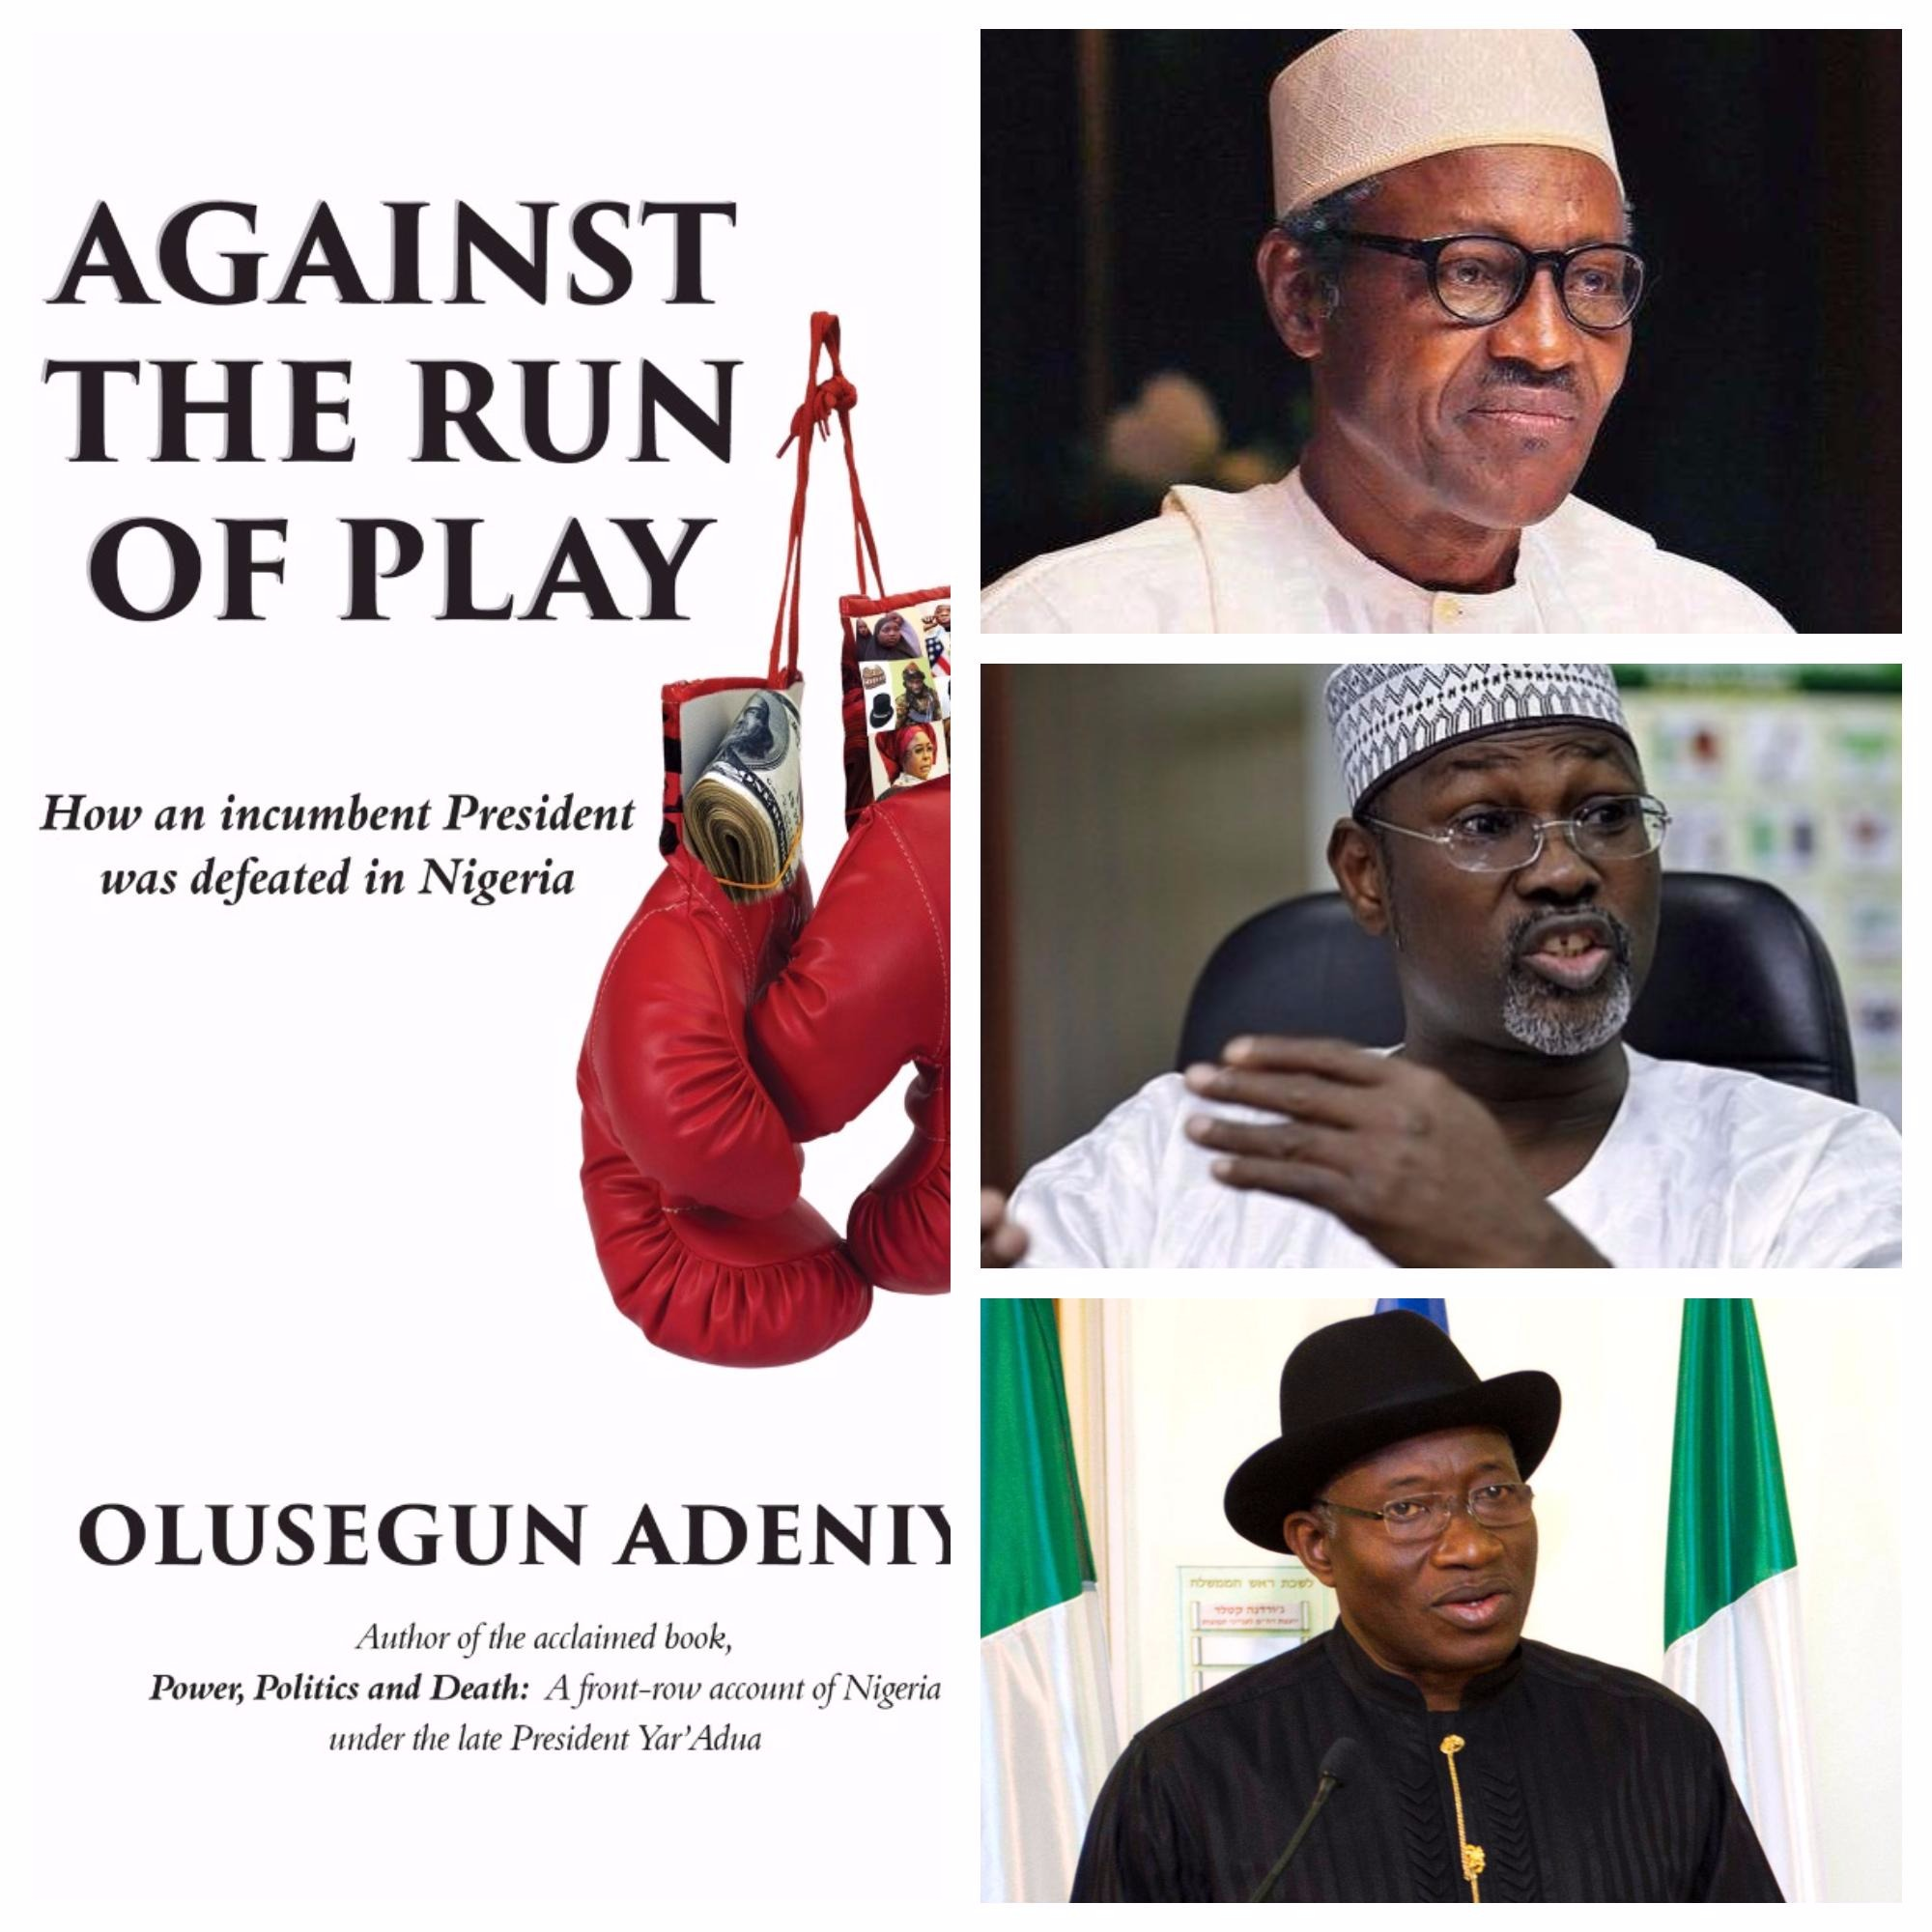 Home dear mr kourouma - Against The Run Of Play Exclusive Excerpt Jonathan Said He Had Seen Enough To Convince Him That Even If He Had Been Declared Winner The Bond Of Trust